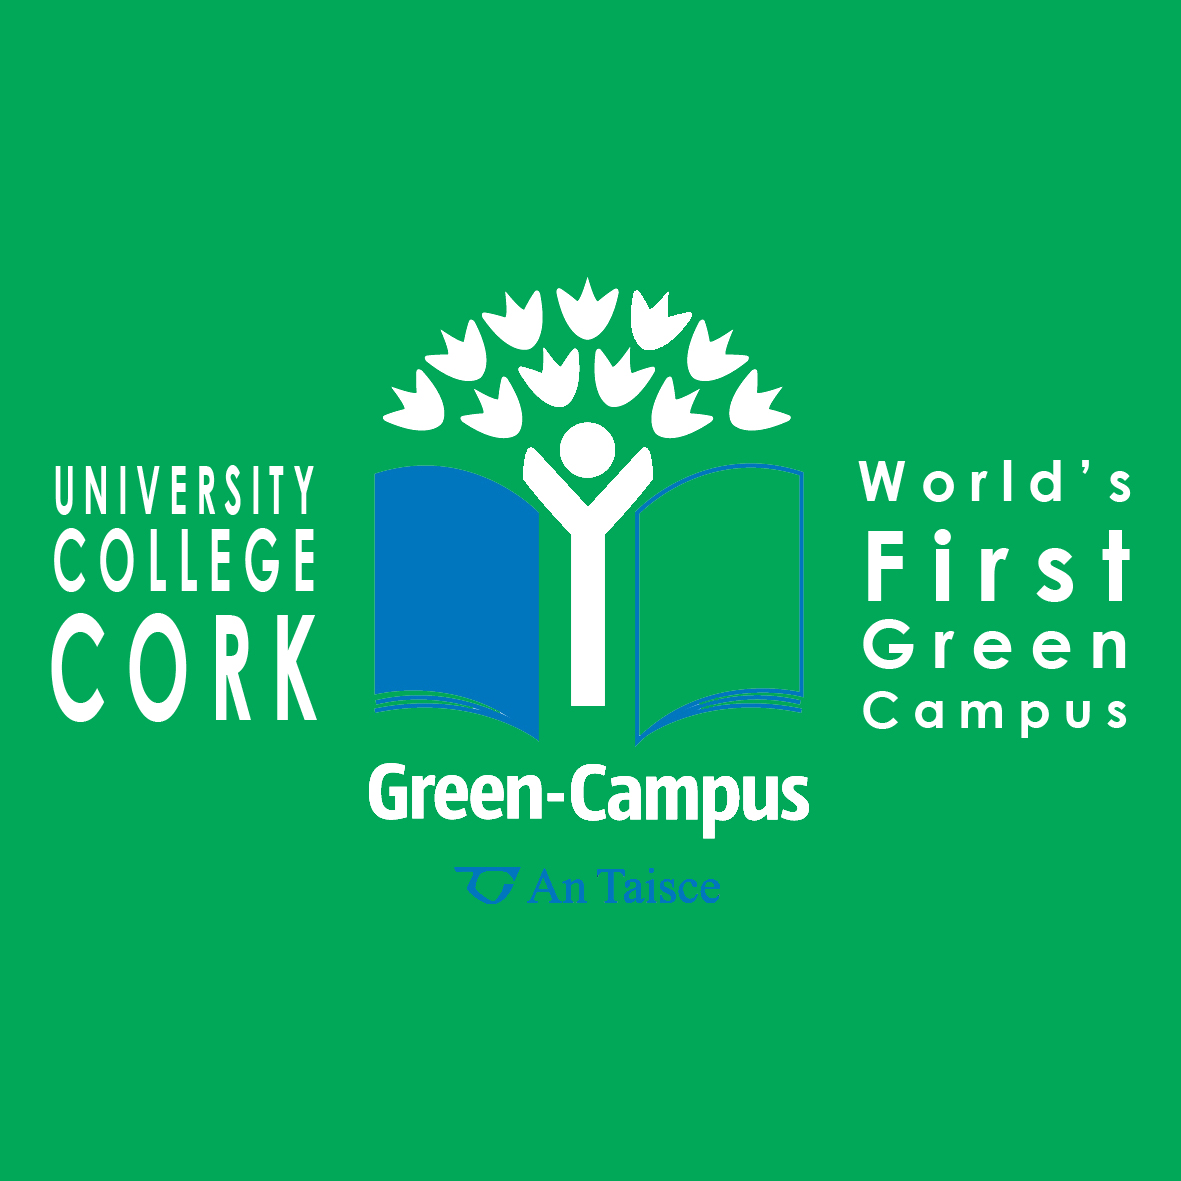 2nd Place for UCC in UI Green Metric University Rankings